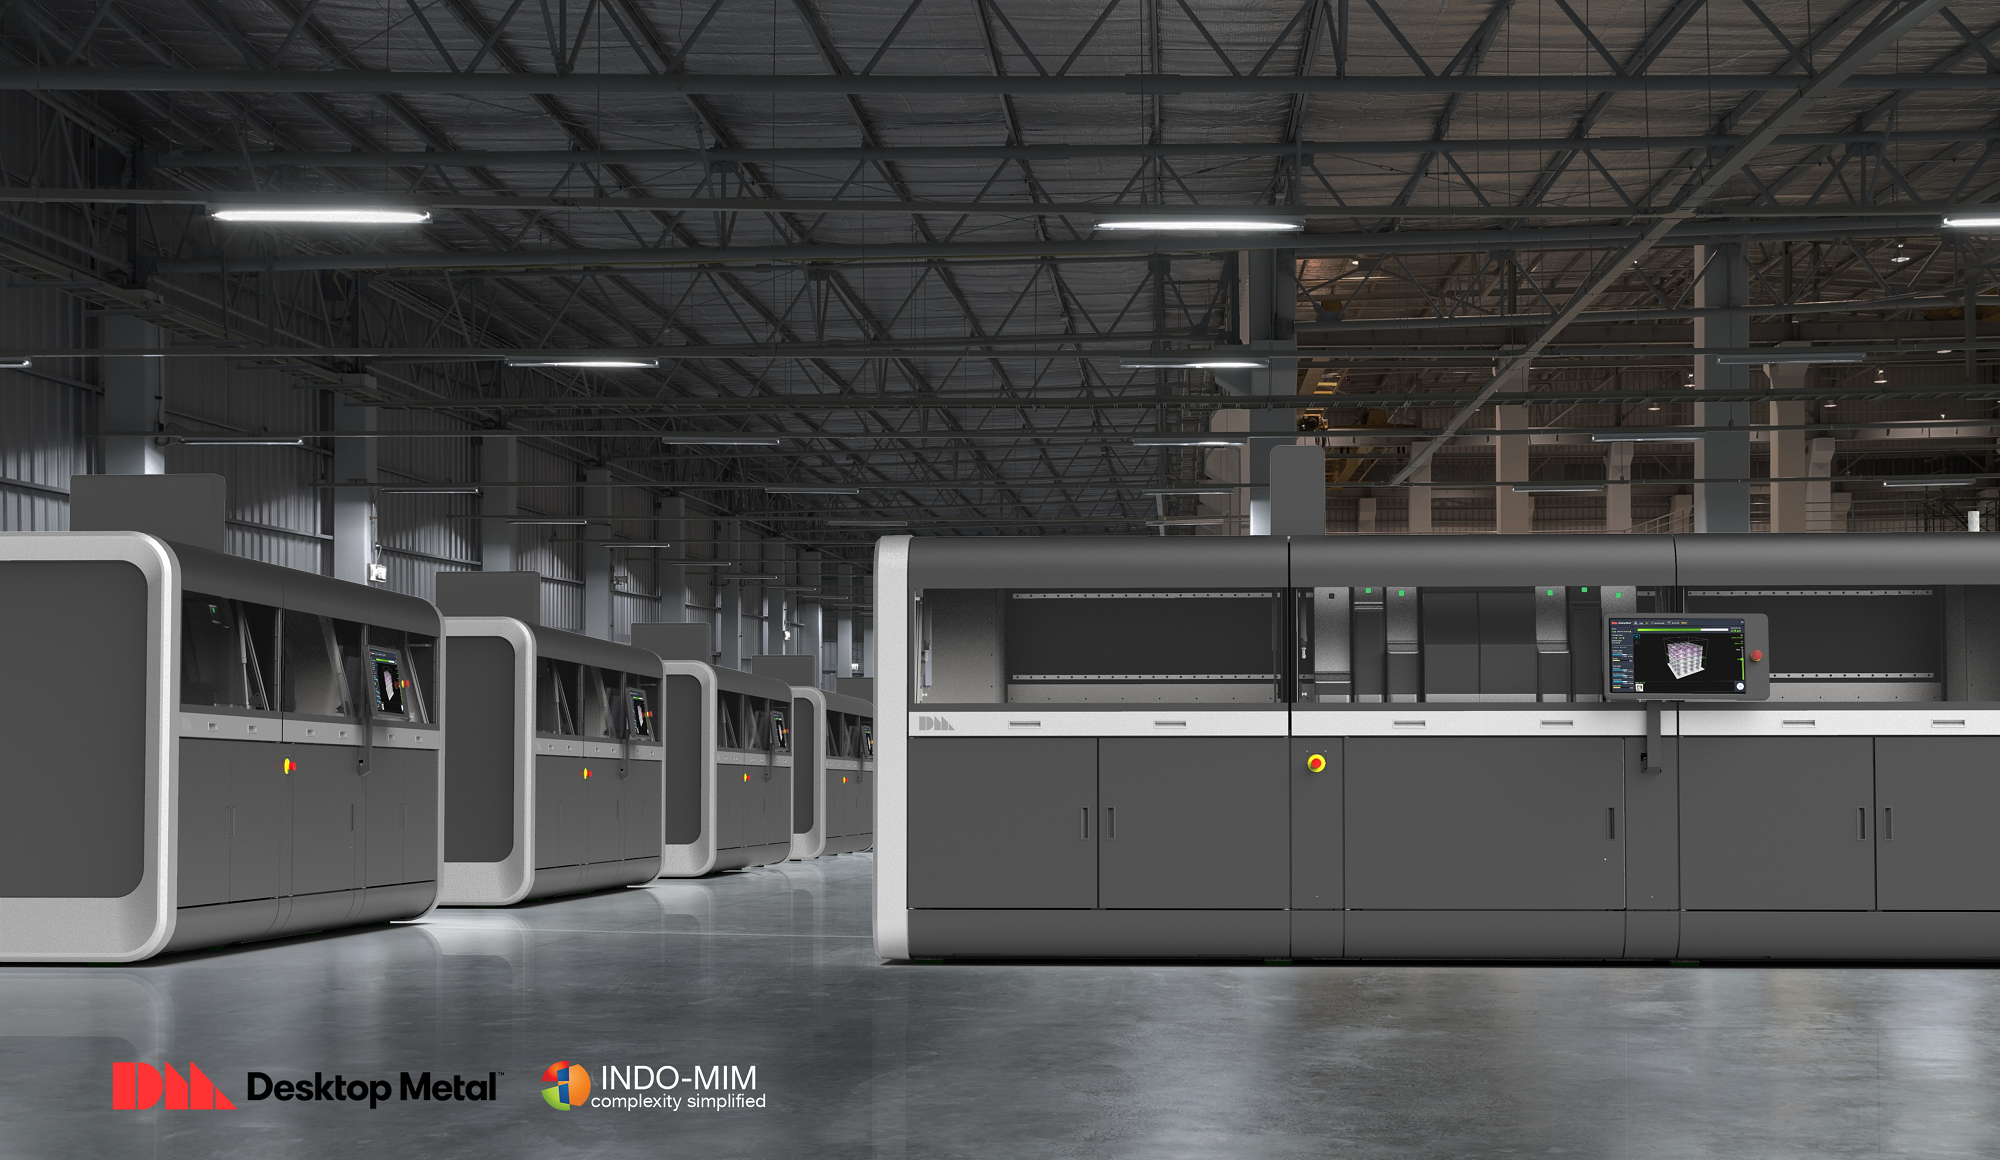 The Production System is the world's first and only metal 3D printing system for mass production that delivers the speed, quality, and cost-per-part needed to compete with traditional manufacturing processes.